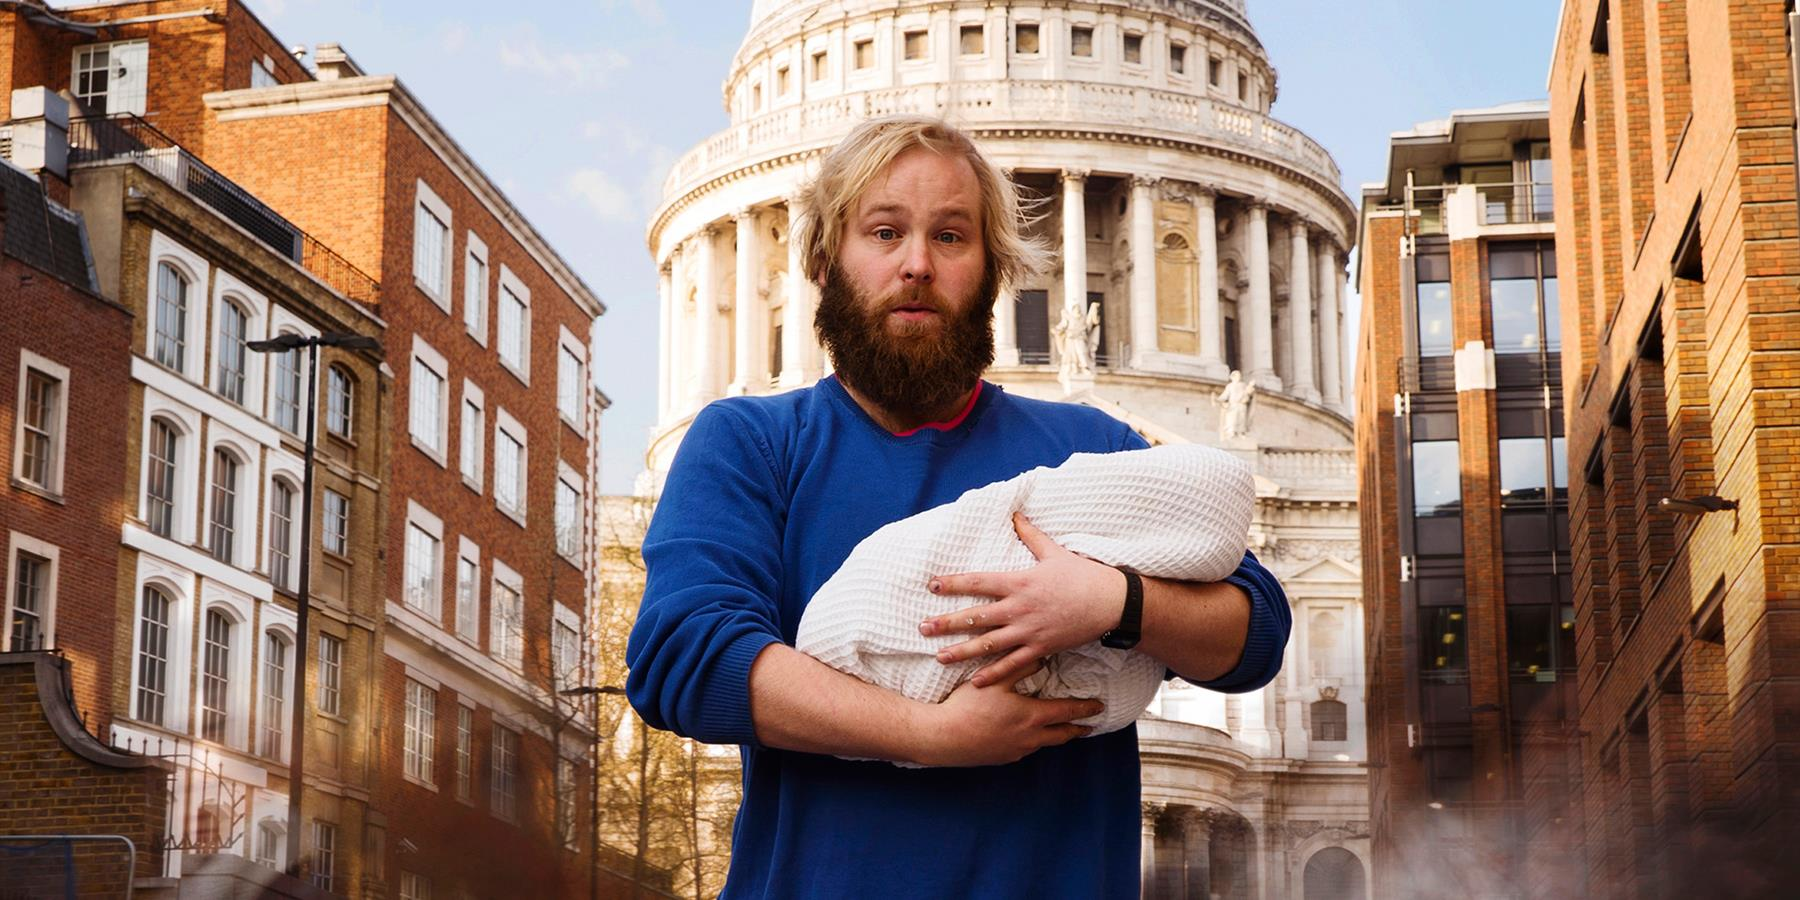 man holding baby in london